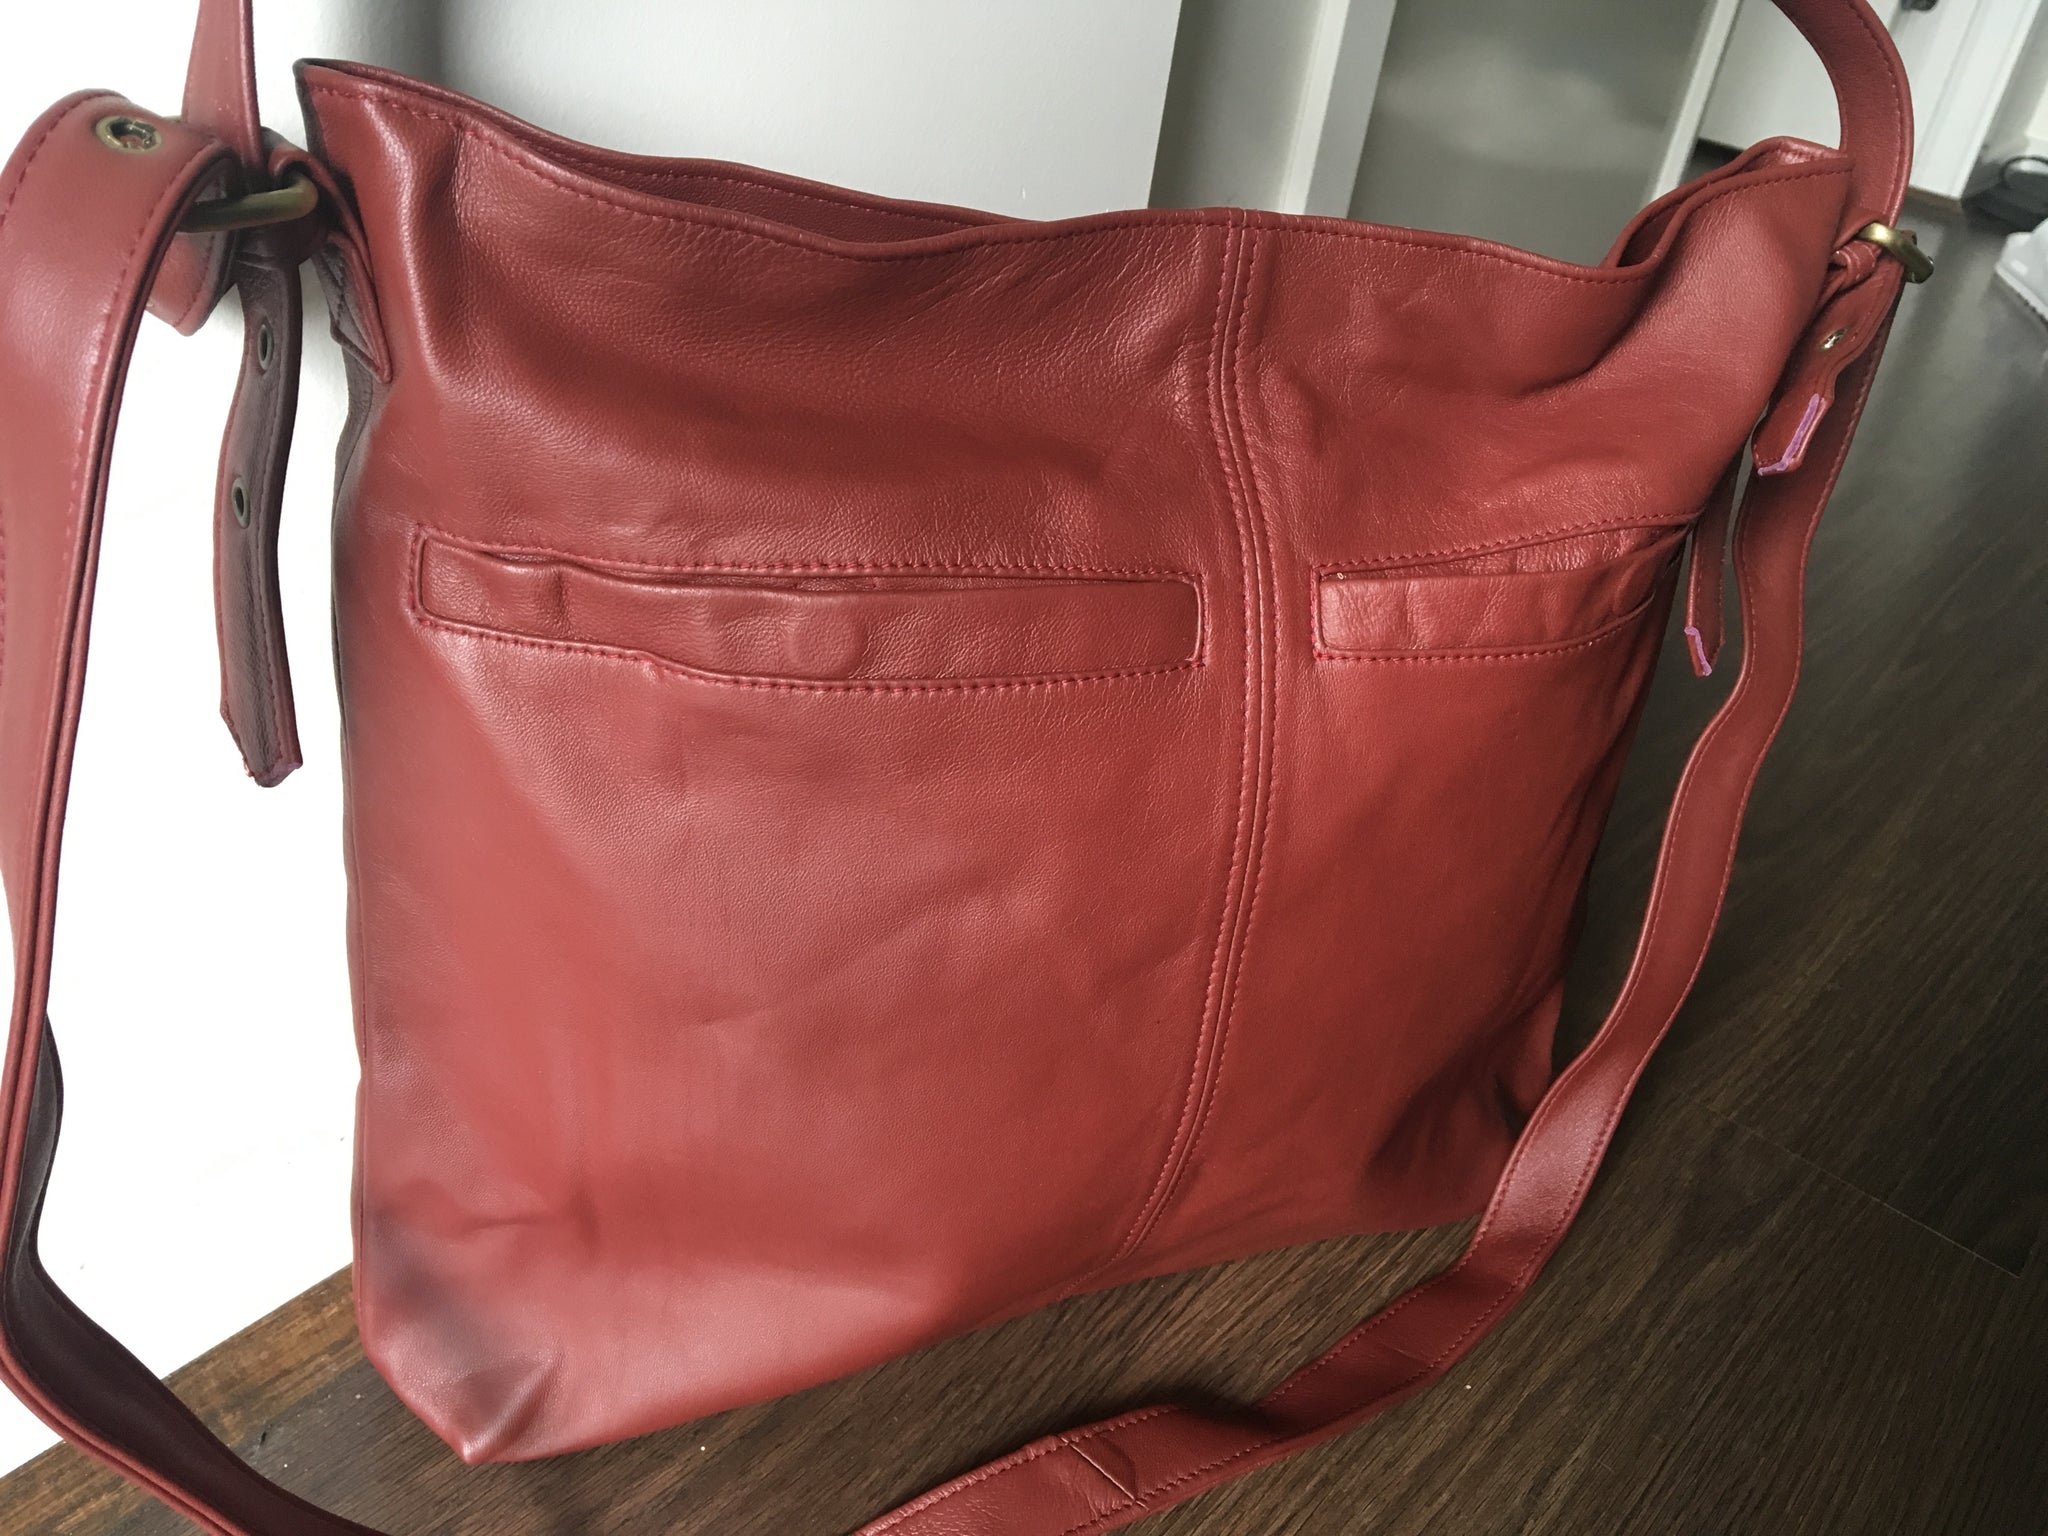 The Verve - Leather Tote Bag. Single strap,adjustable belt strap.